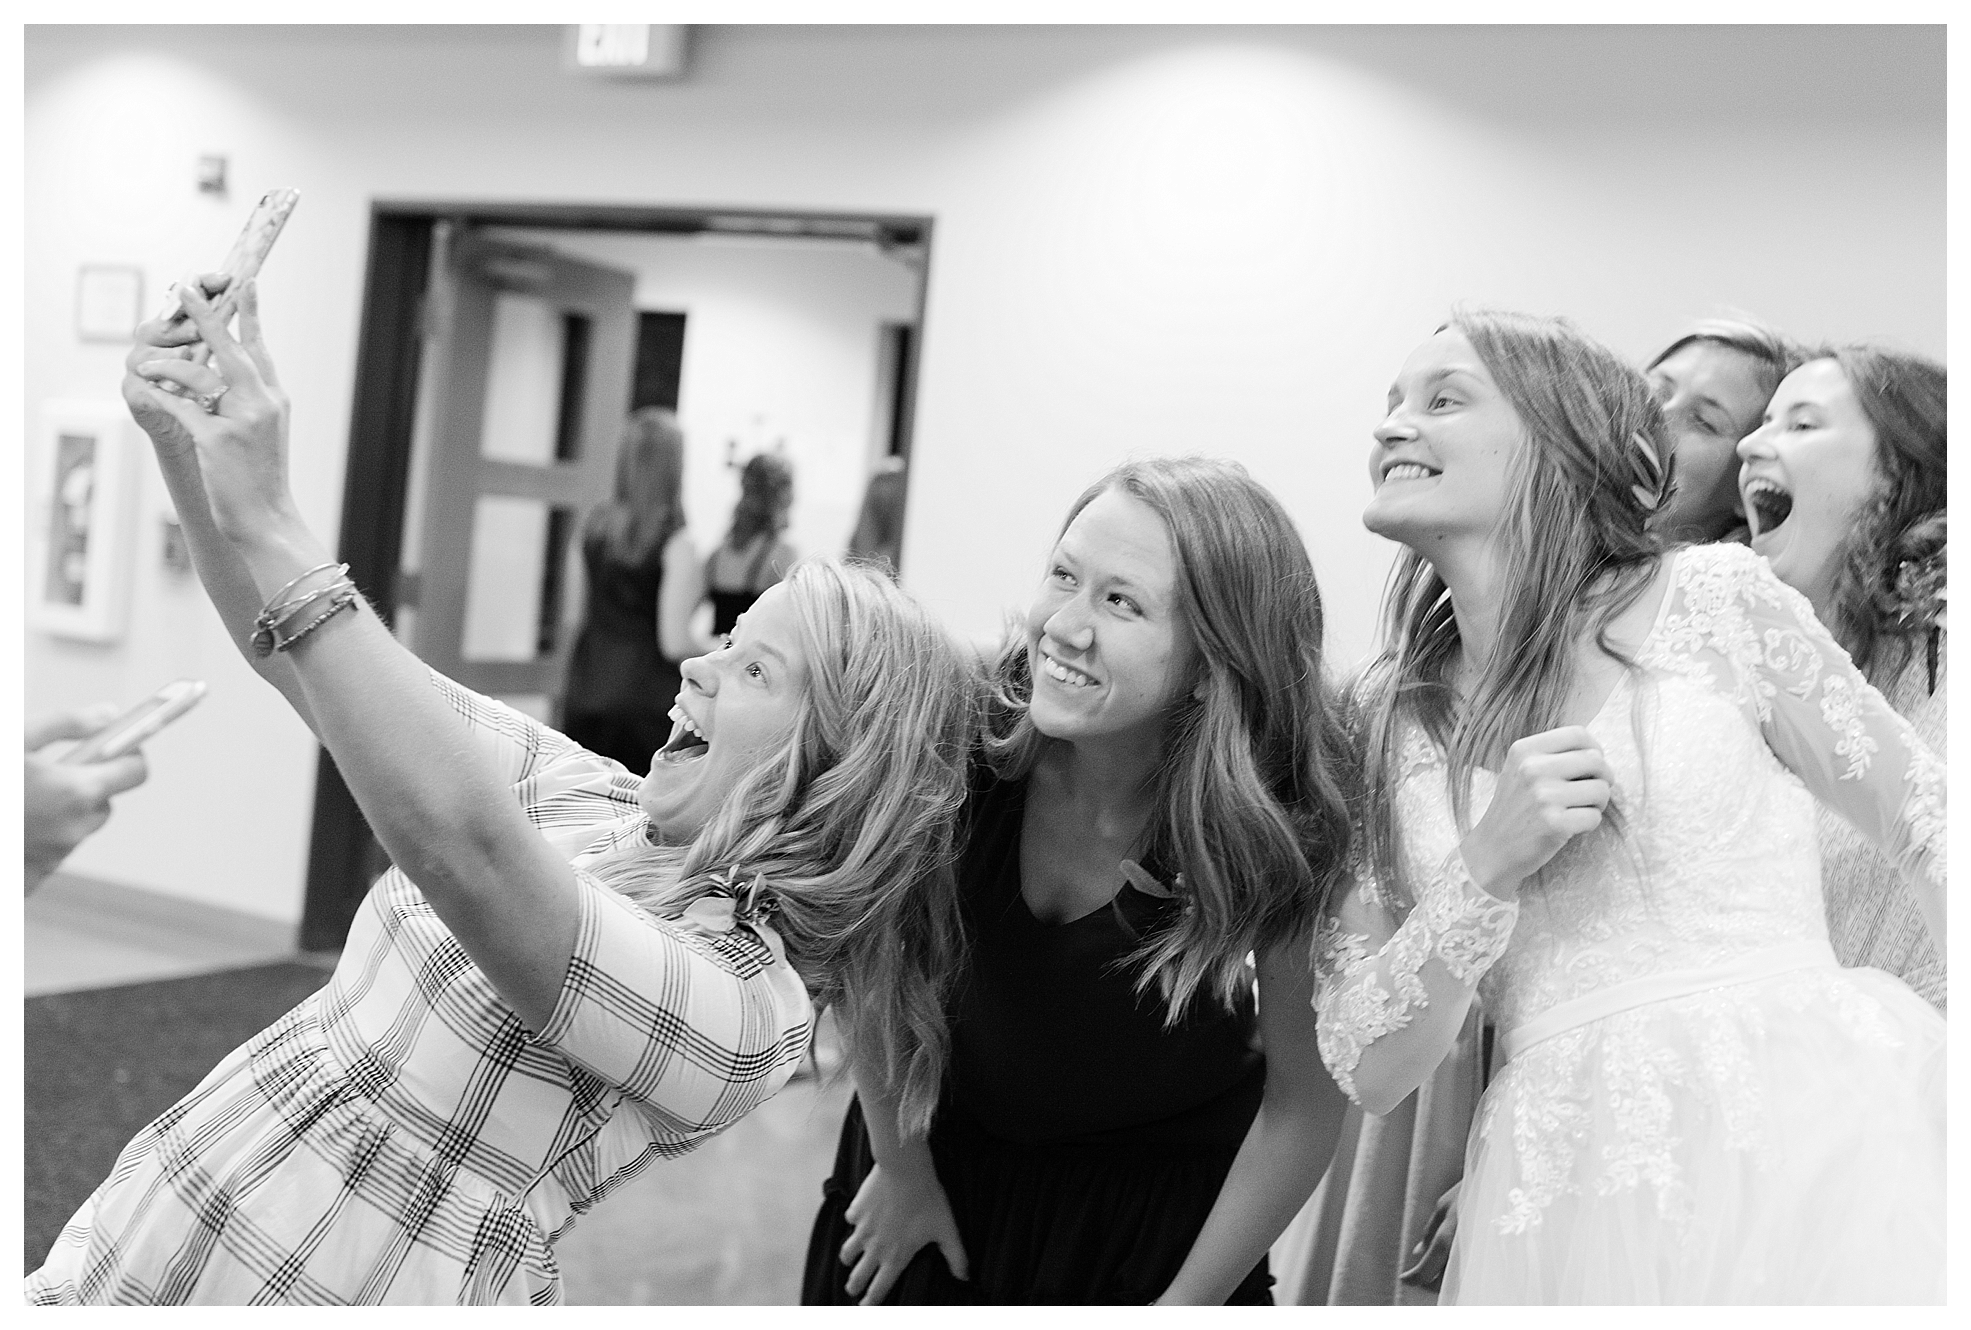 Love!  Your always sure to catch a fun selfie photo at weddings! :)